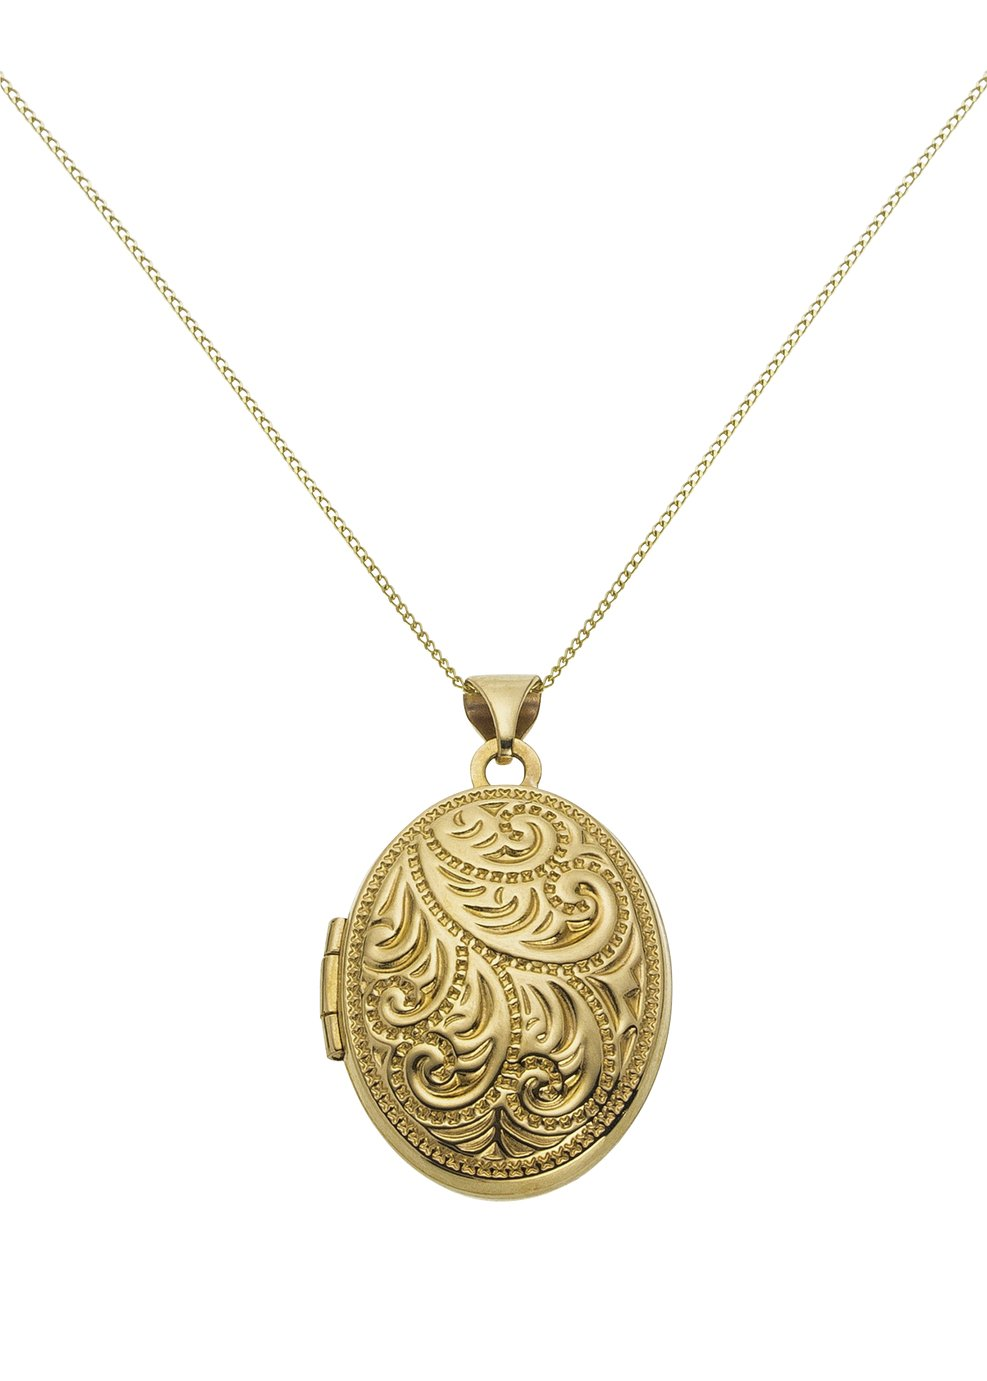 Image of 9 Carat Gold - Family Locket Pendant.